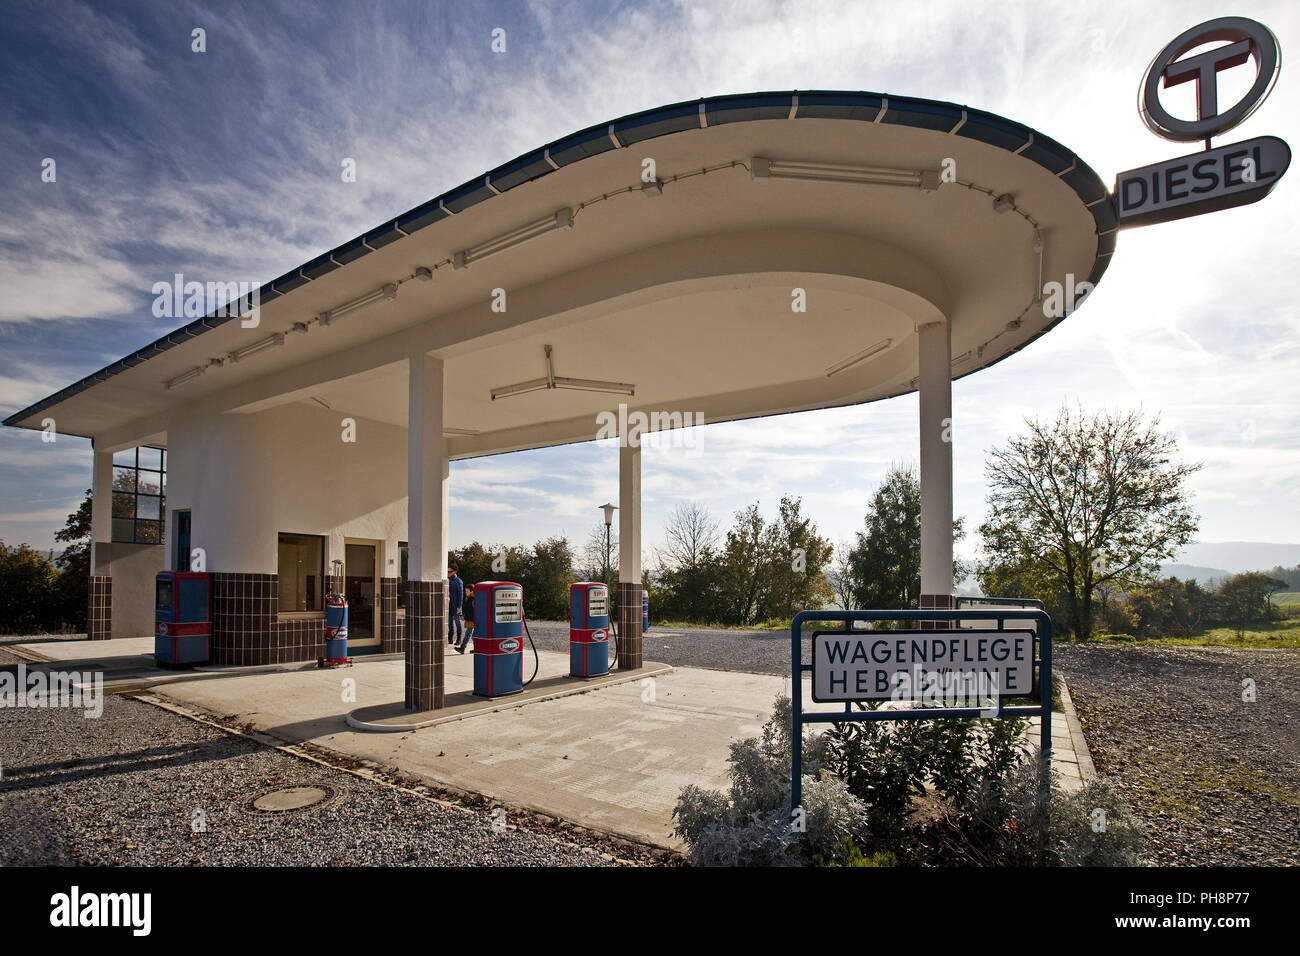 historic gas station, open air museum, Detmold - Stock Image